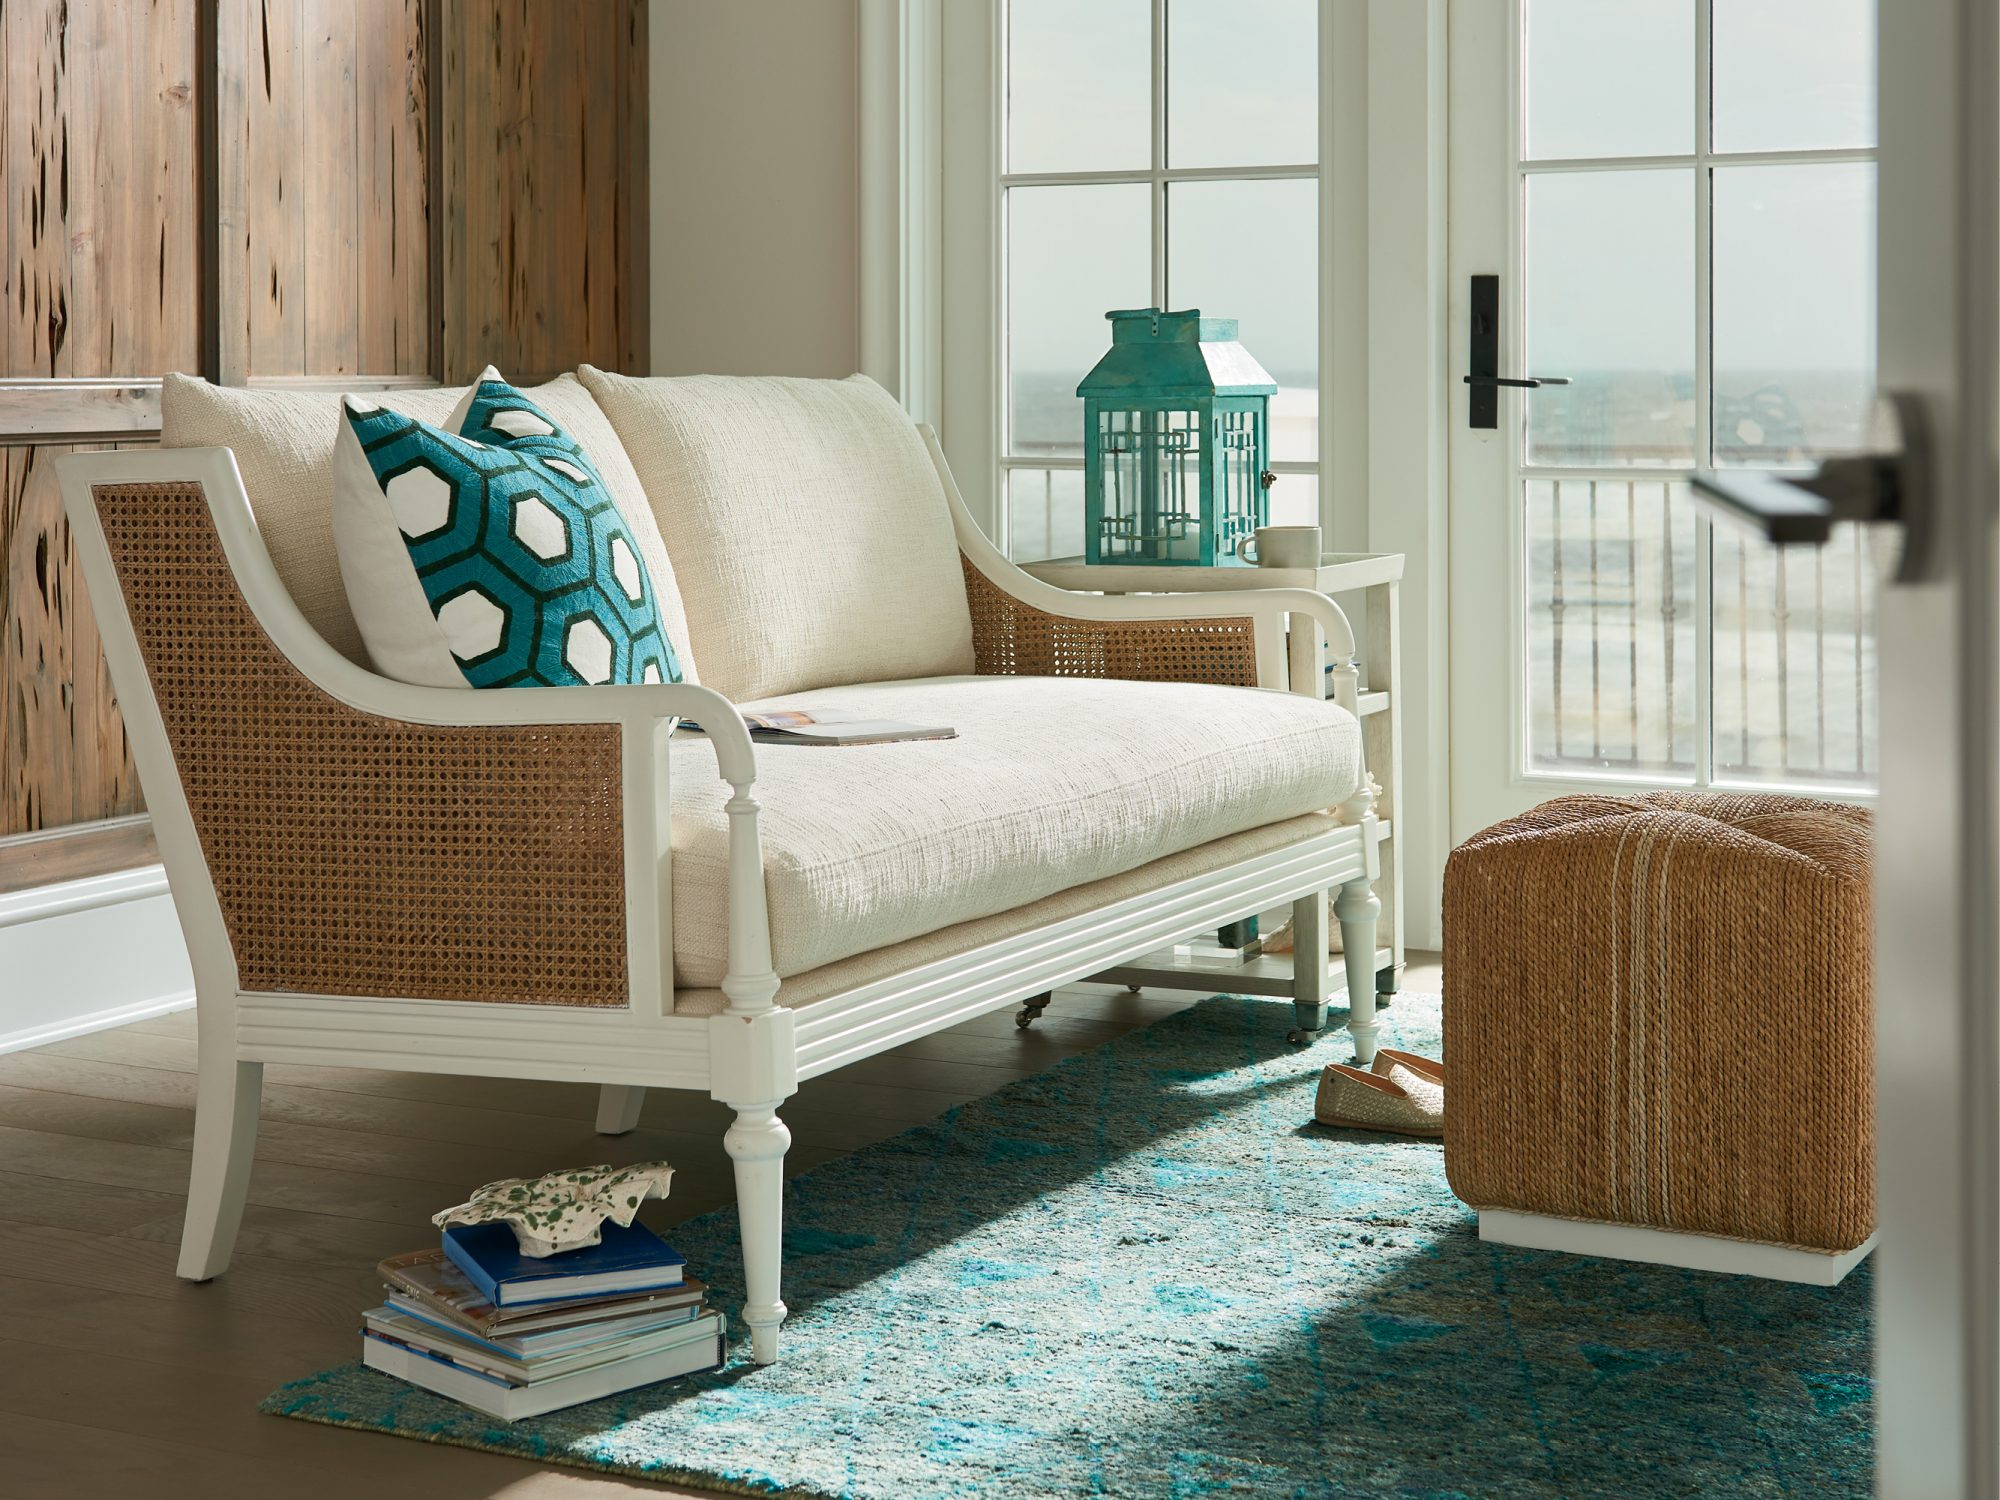 Stone Harbor Loveseat and Abaca Cube Ottoman from the Coastal Living Furniture Collection